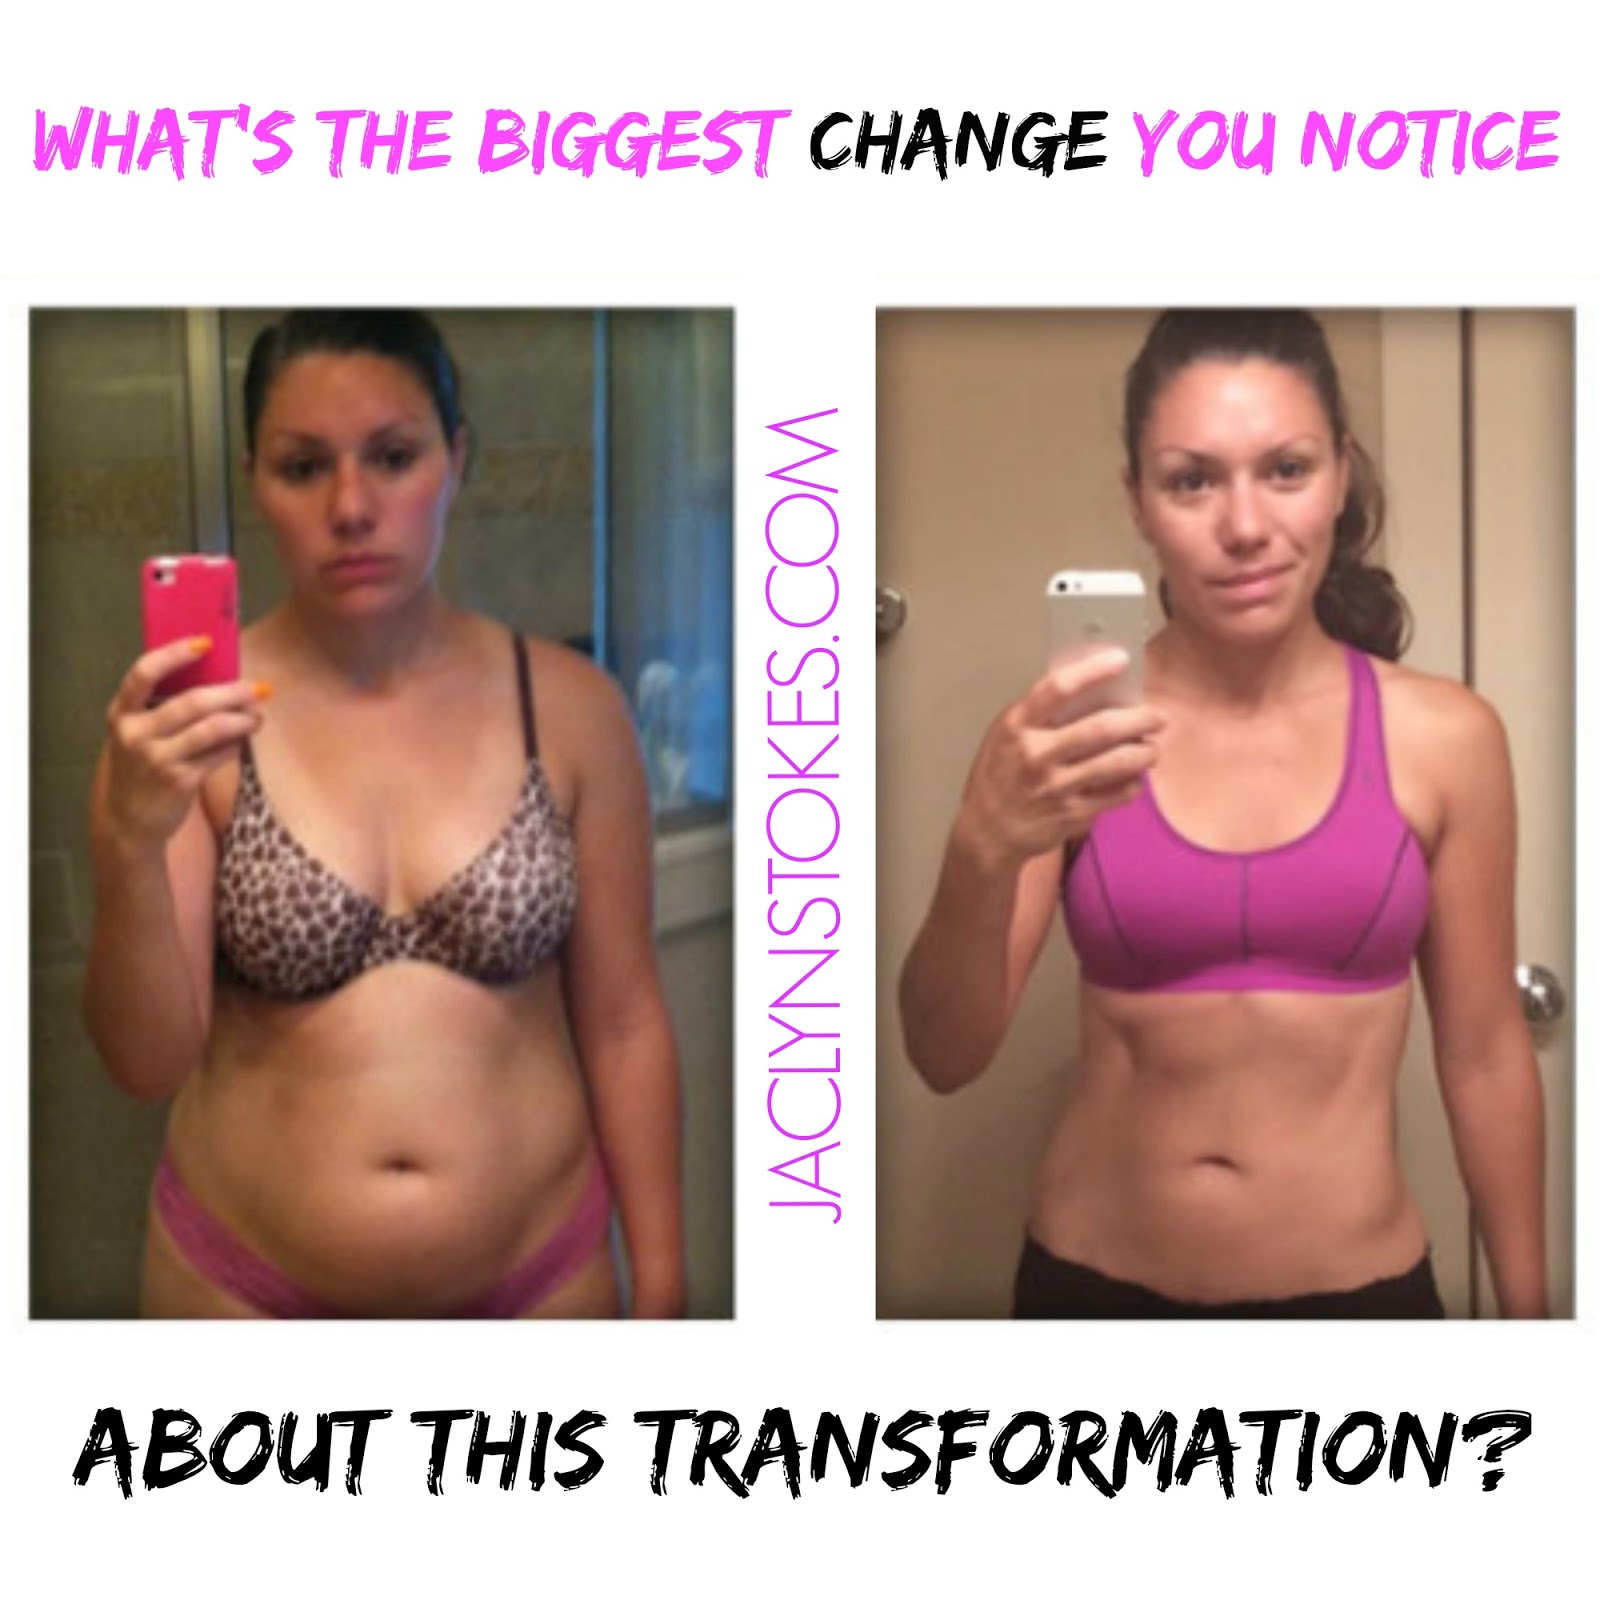 beachbody shakeology before after results transformation pic